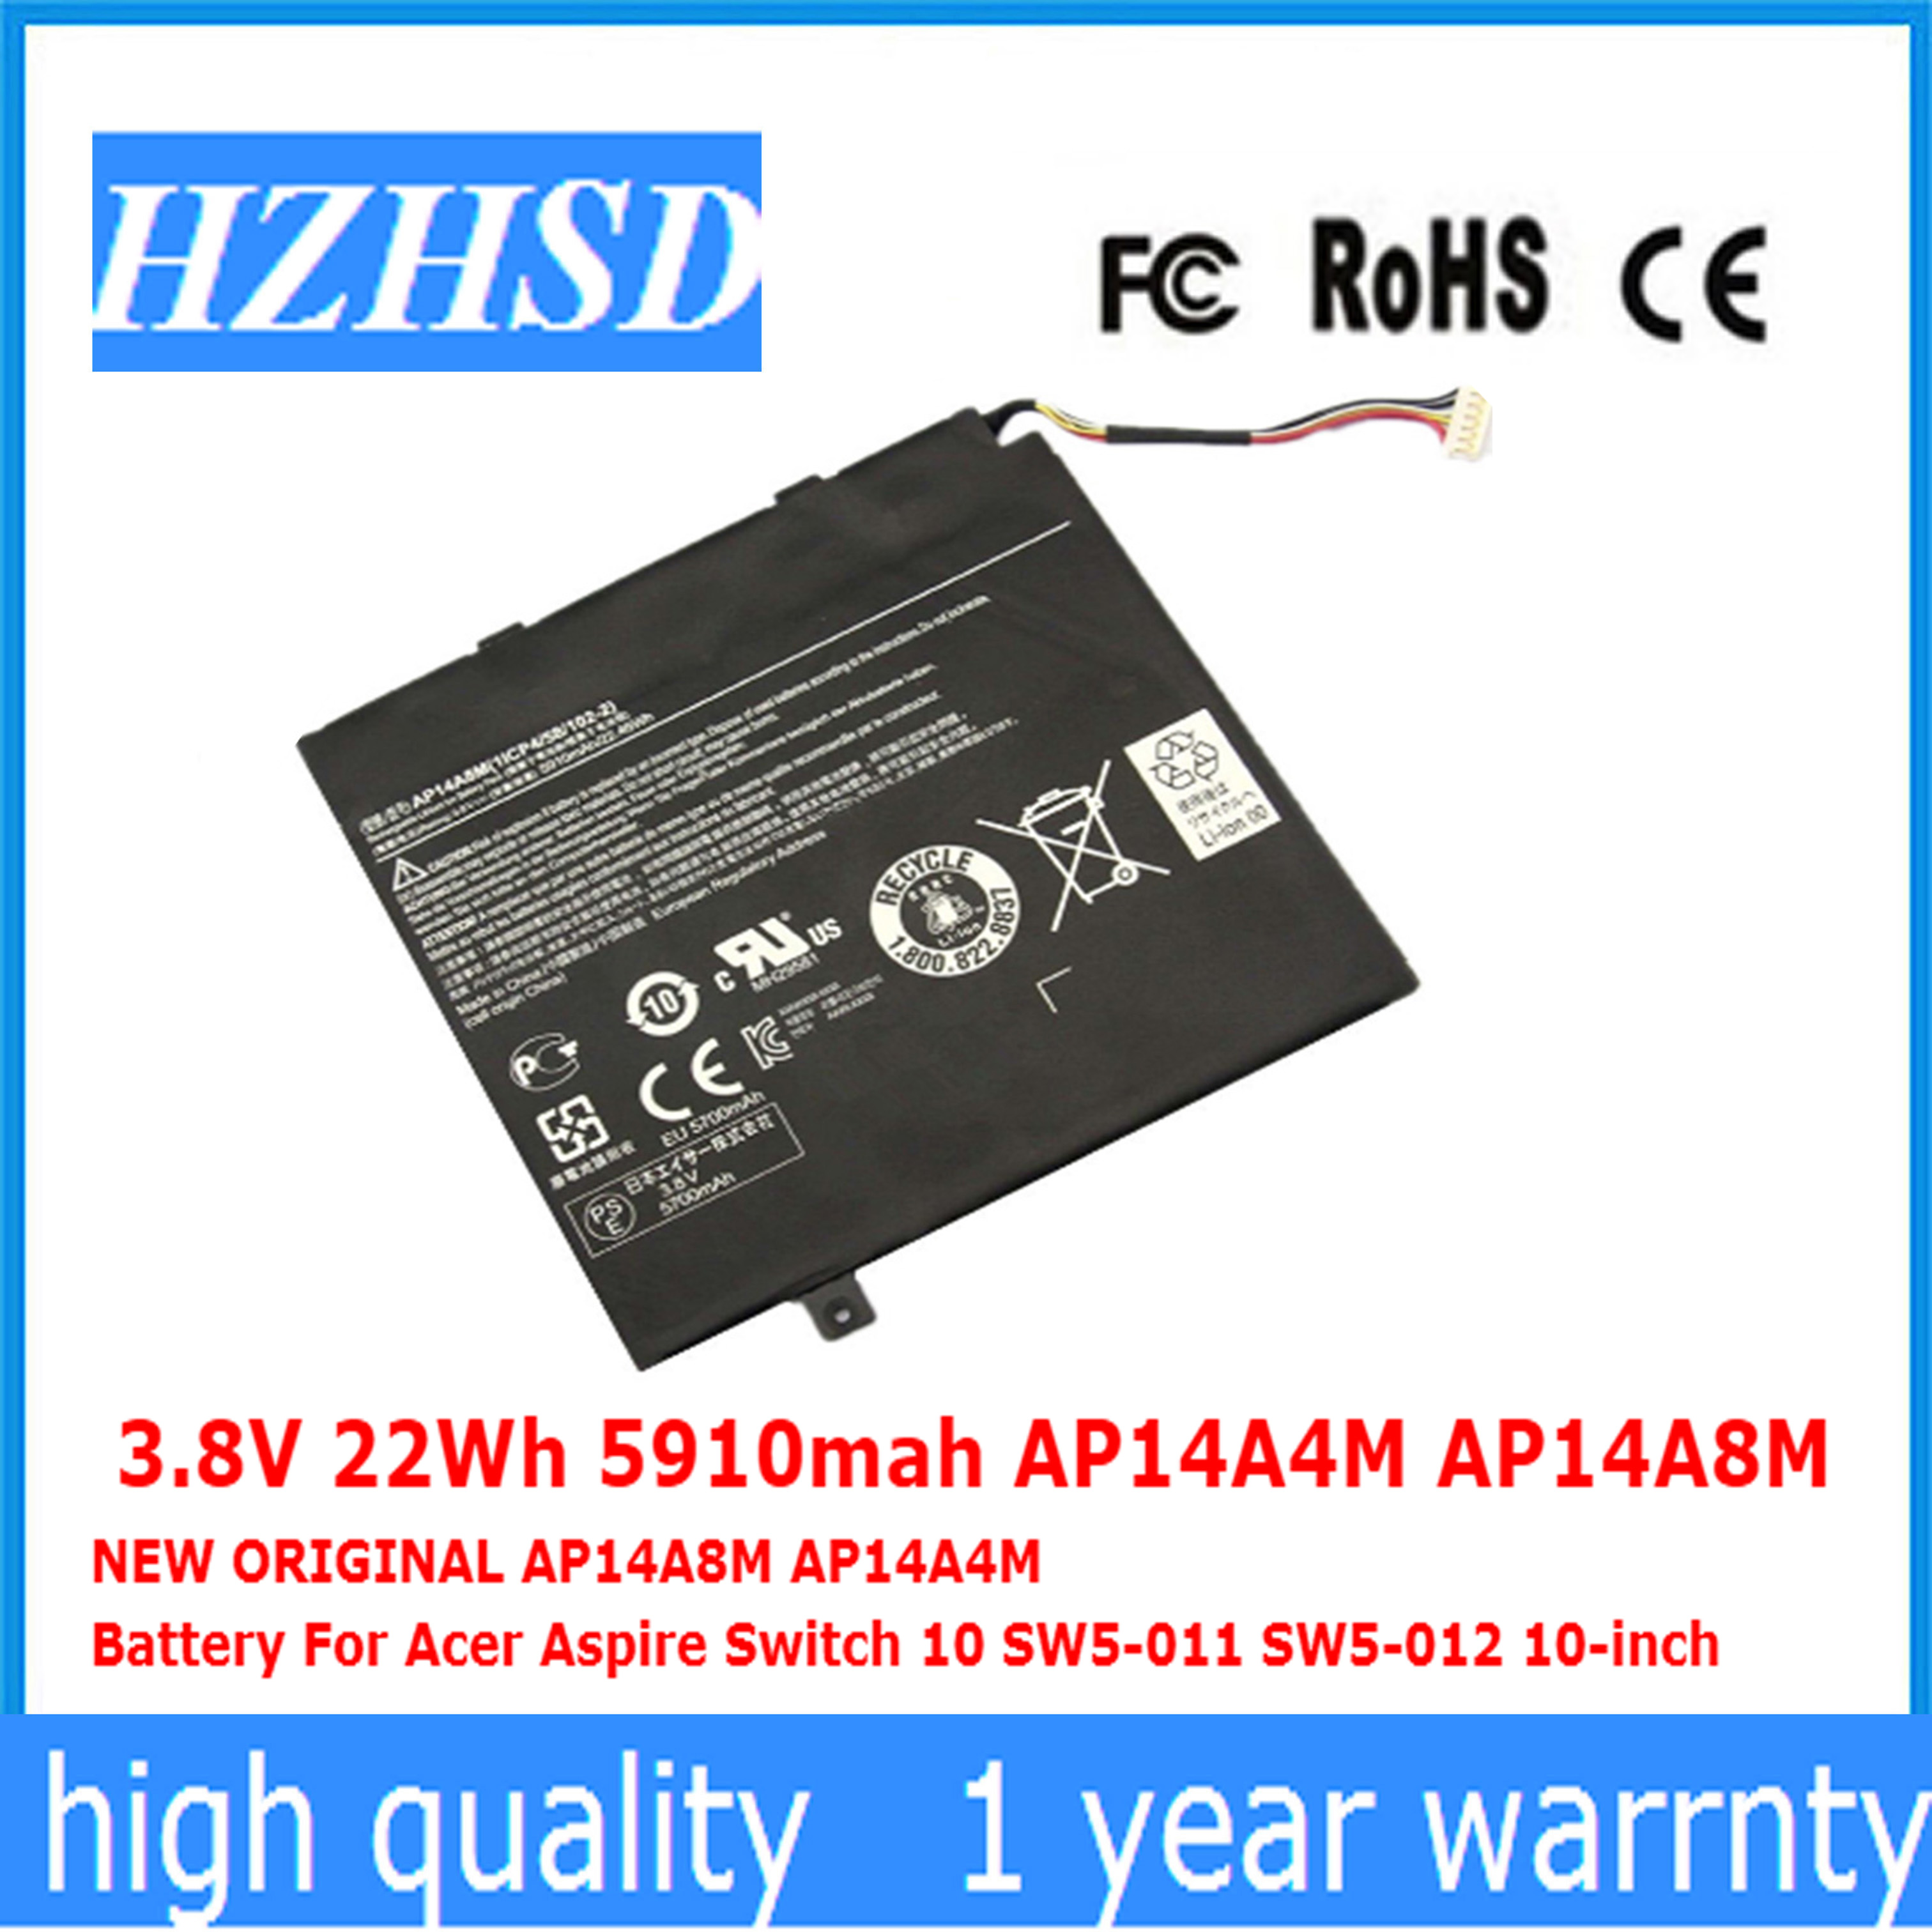 3.8V 22Wh 5910mah AP14A4M AP14A8M NEW ORIGINAL AP14A8M AP14A4M Battery For Acer Aspire Switch 10 SW5-011 SW5-012 10-inch